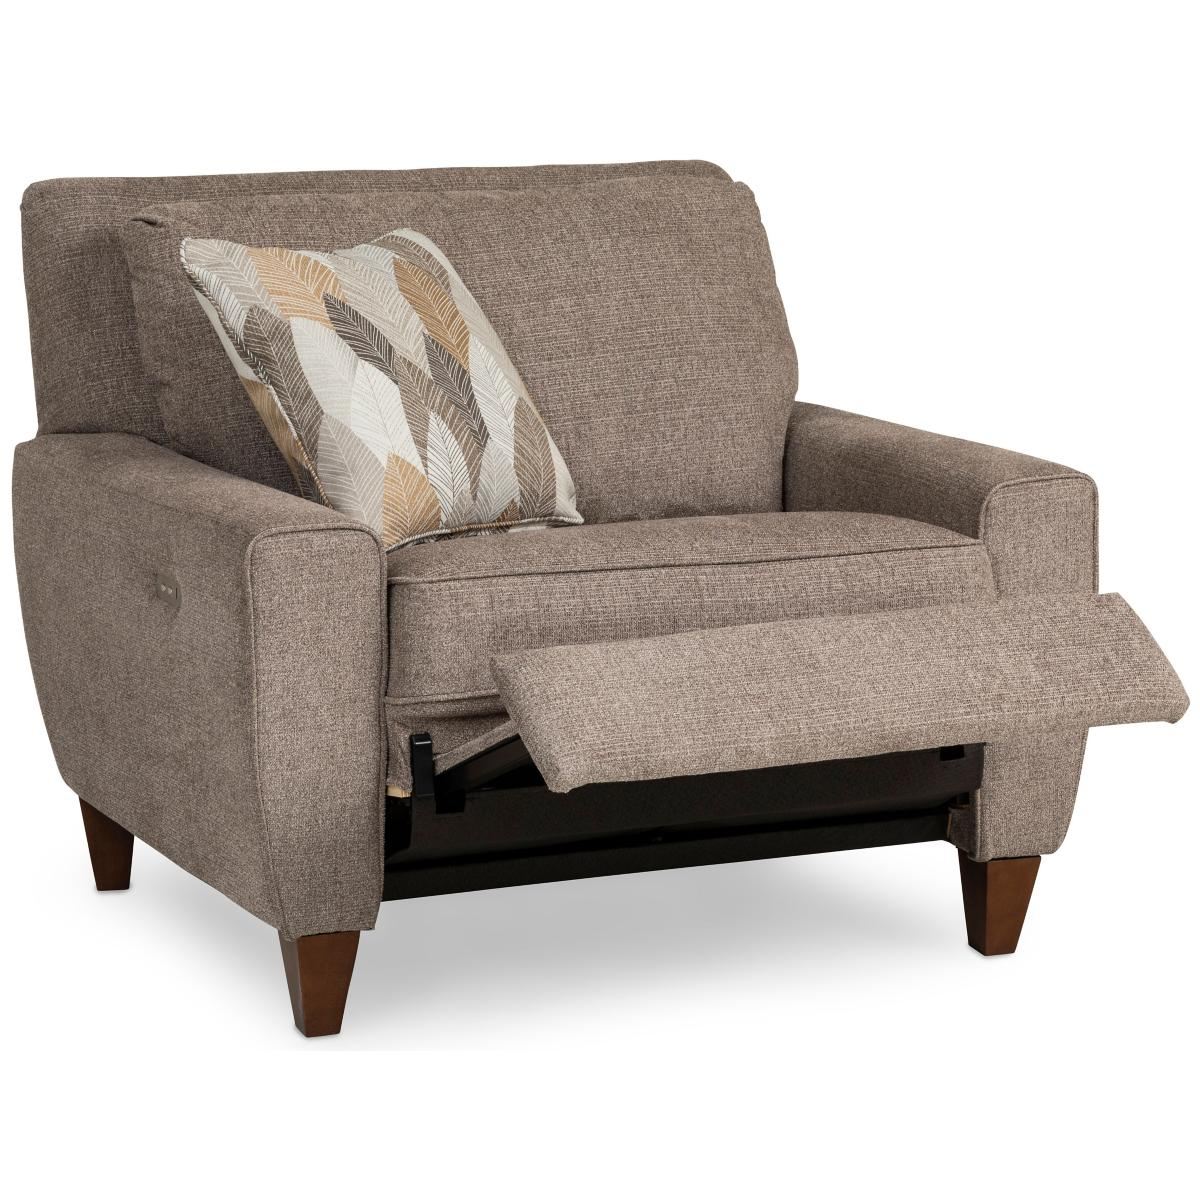 Modern Recliner Buying Guide: How to Choose a Recliner